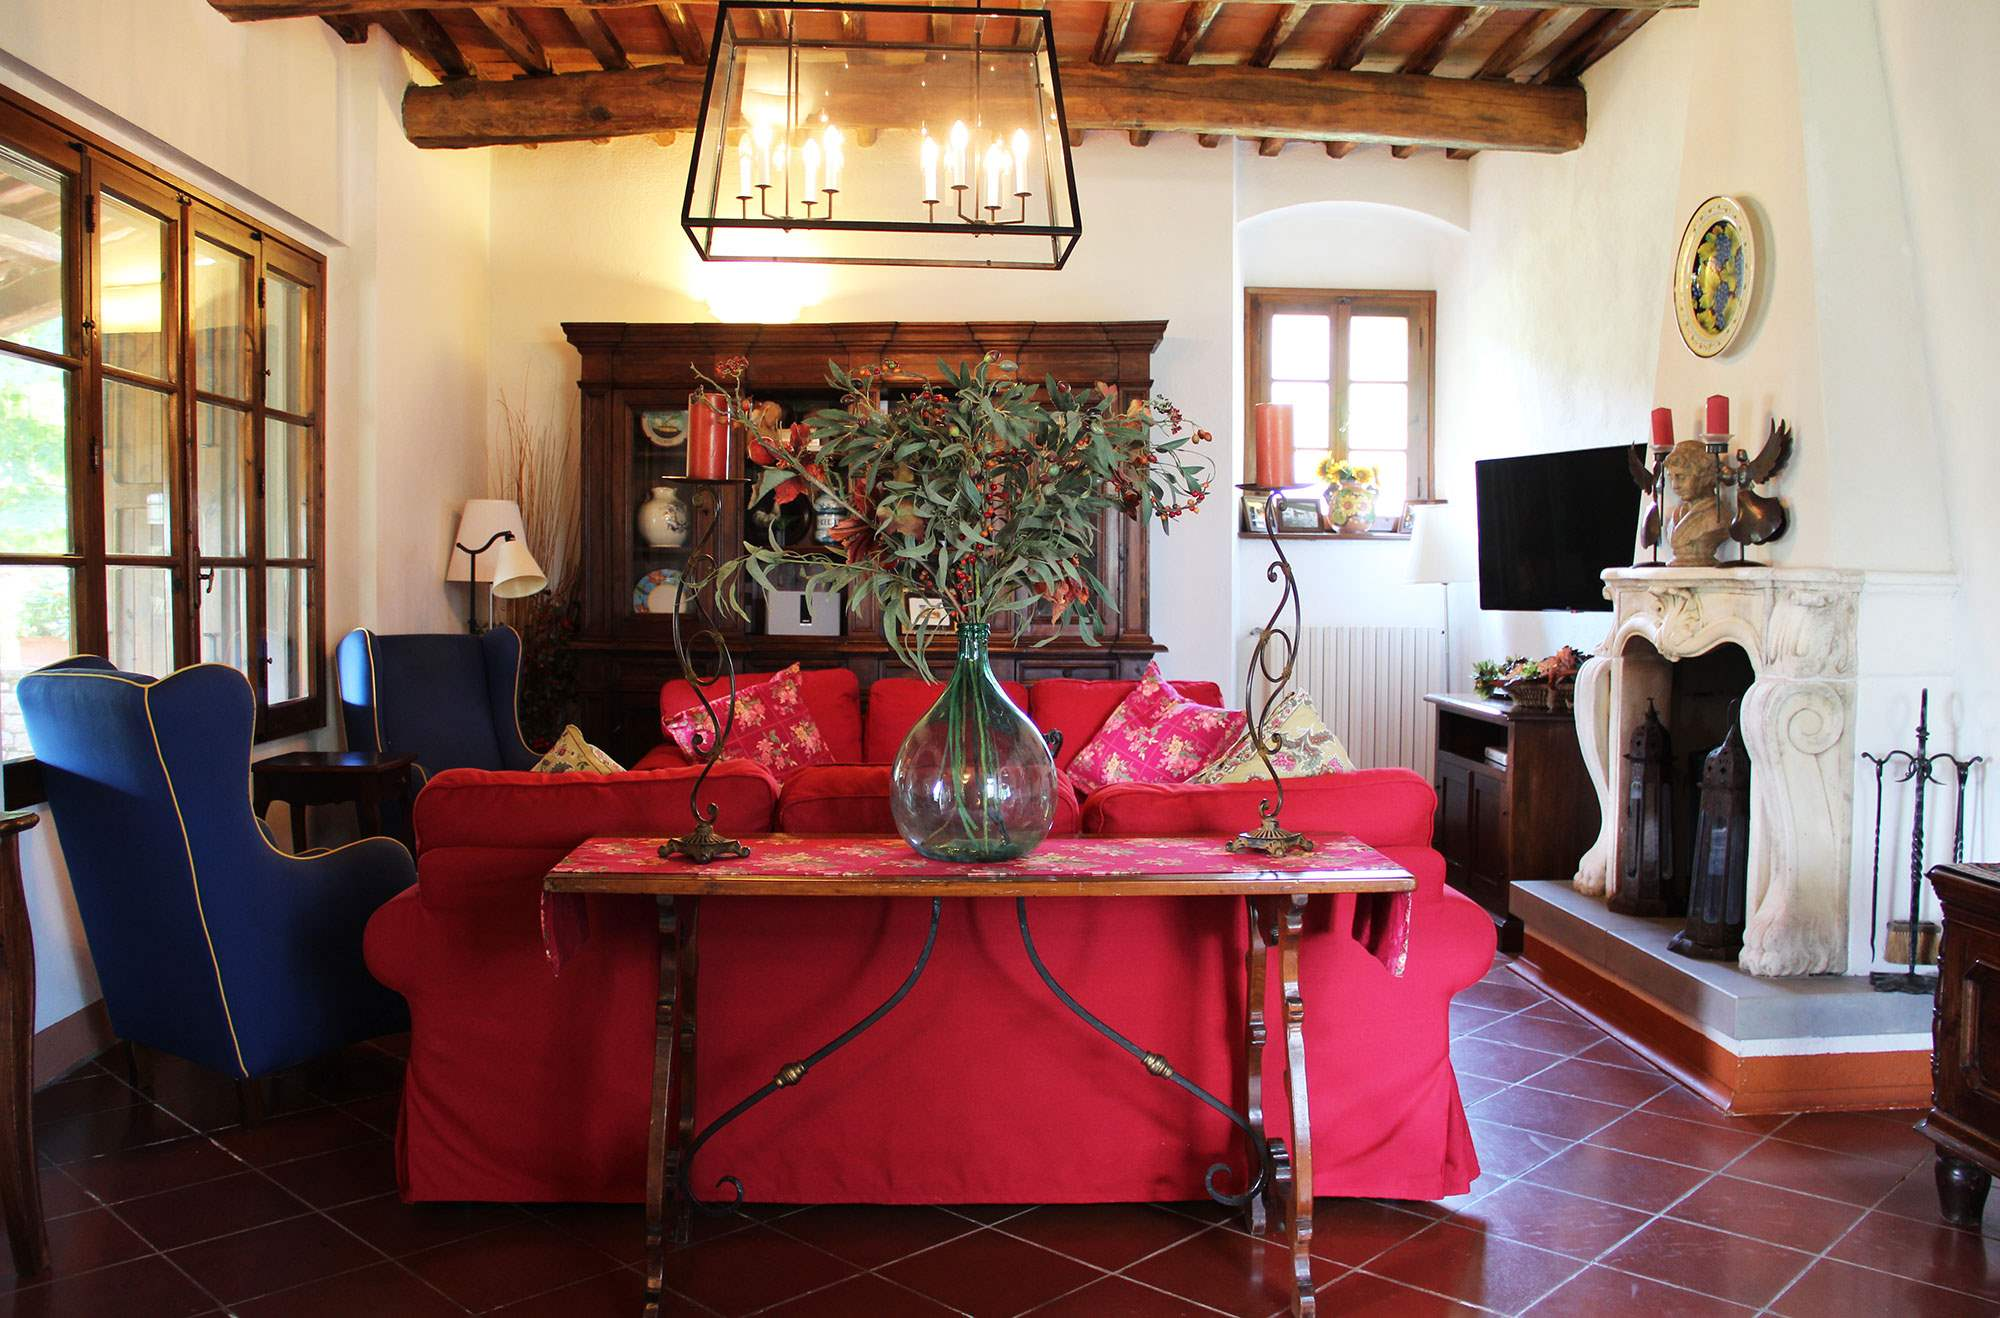 Villa Felicita, Main house and apartment, 10 persons rate, 5 bedroom villa in Chianti & Countryside, Tuscany Photo #6